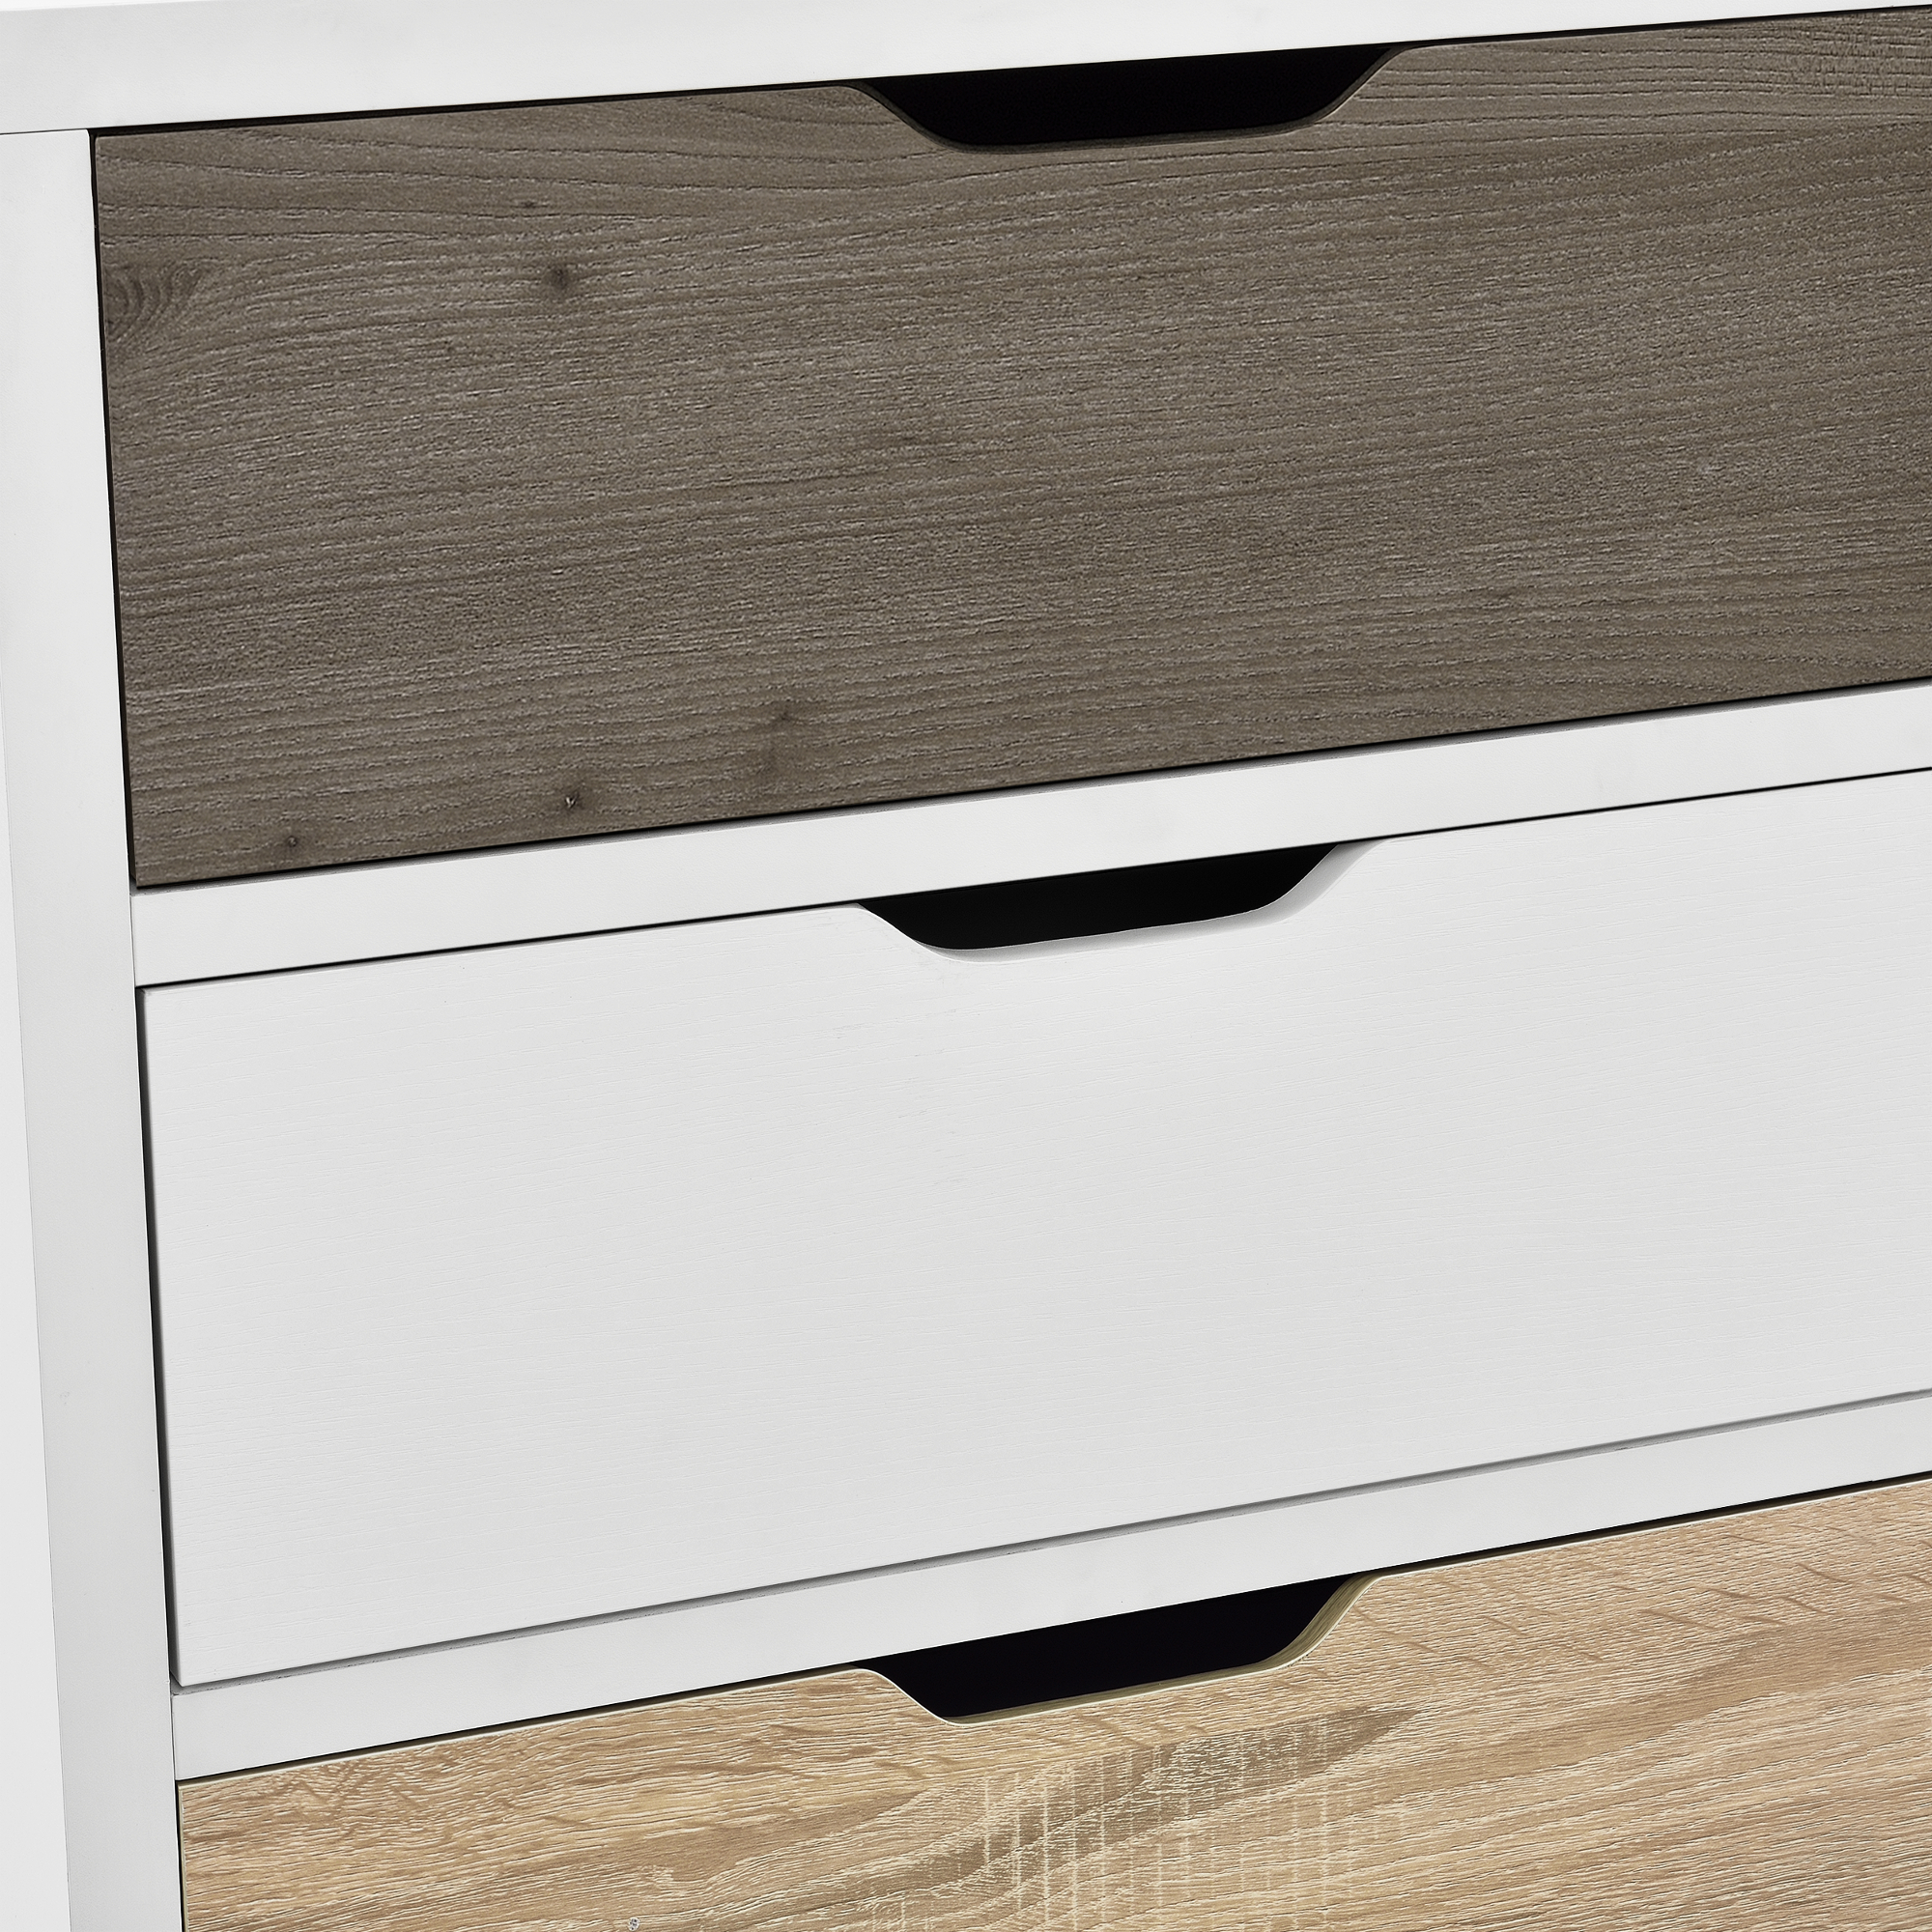 design commode buffet armoire blanc ch ne table d 39 appoint highboard ebay. Black Bedroom Furniture Sets. Home Design Ideas